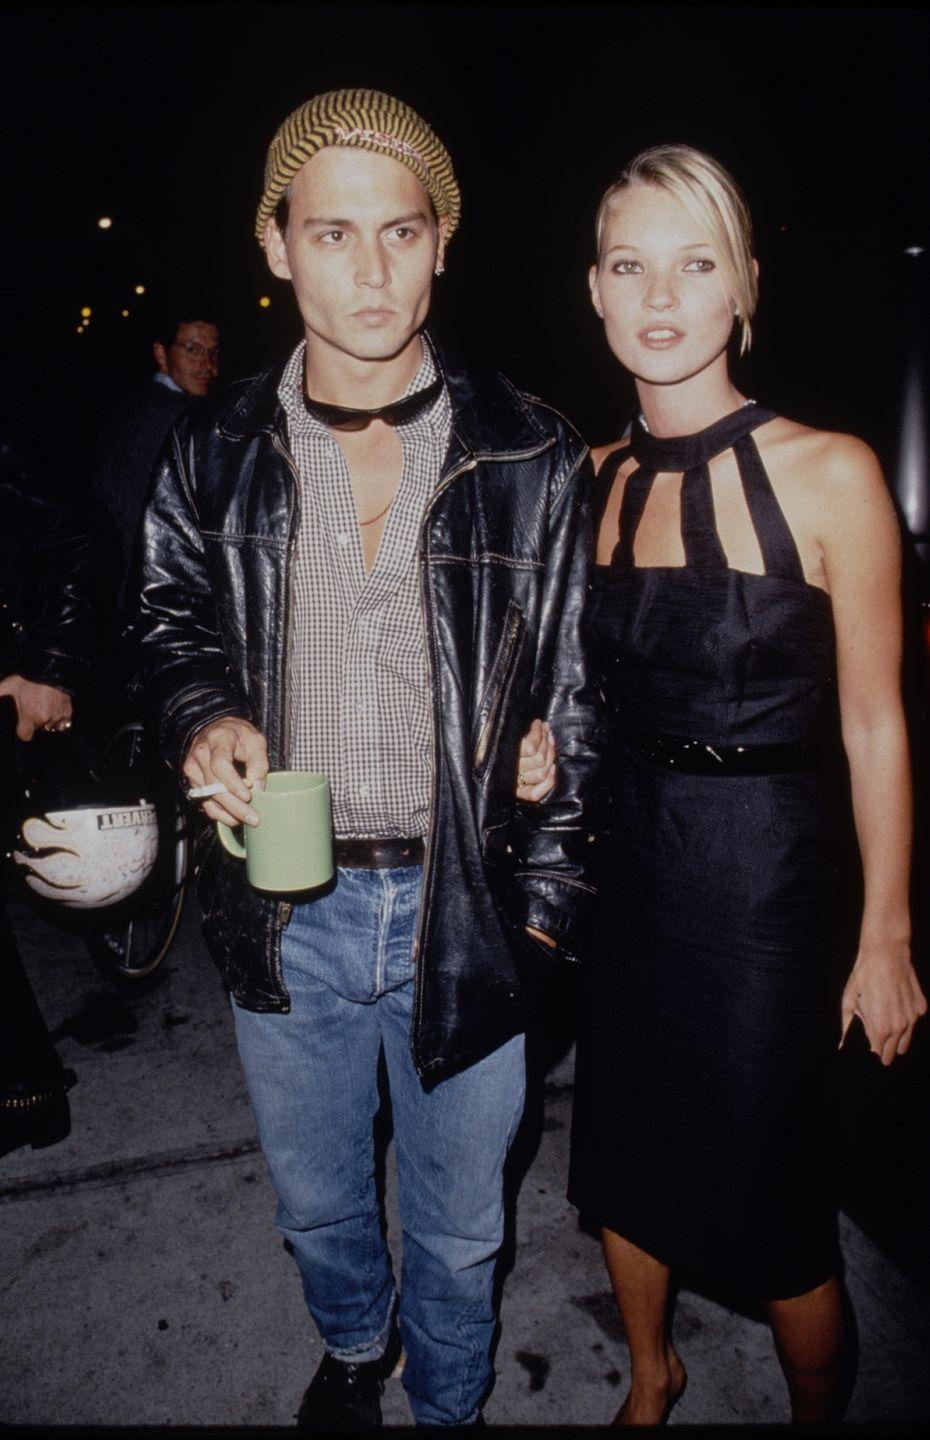 <p>In addition to choker necklaces, there were choker dresses. The neck was clearly having a major moment in the '90s. </p>